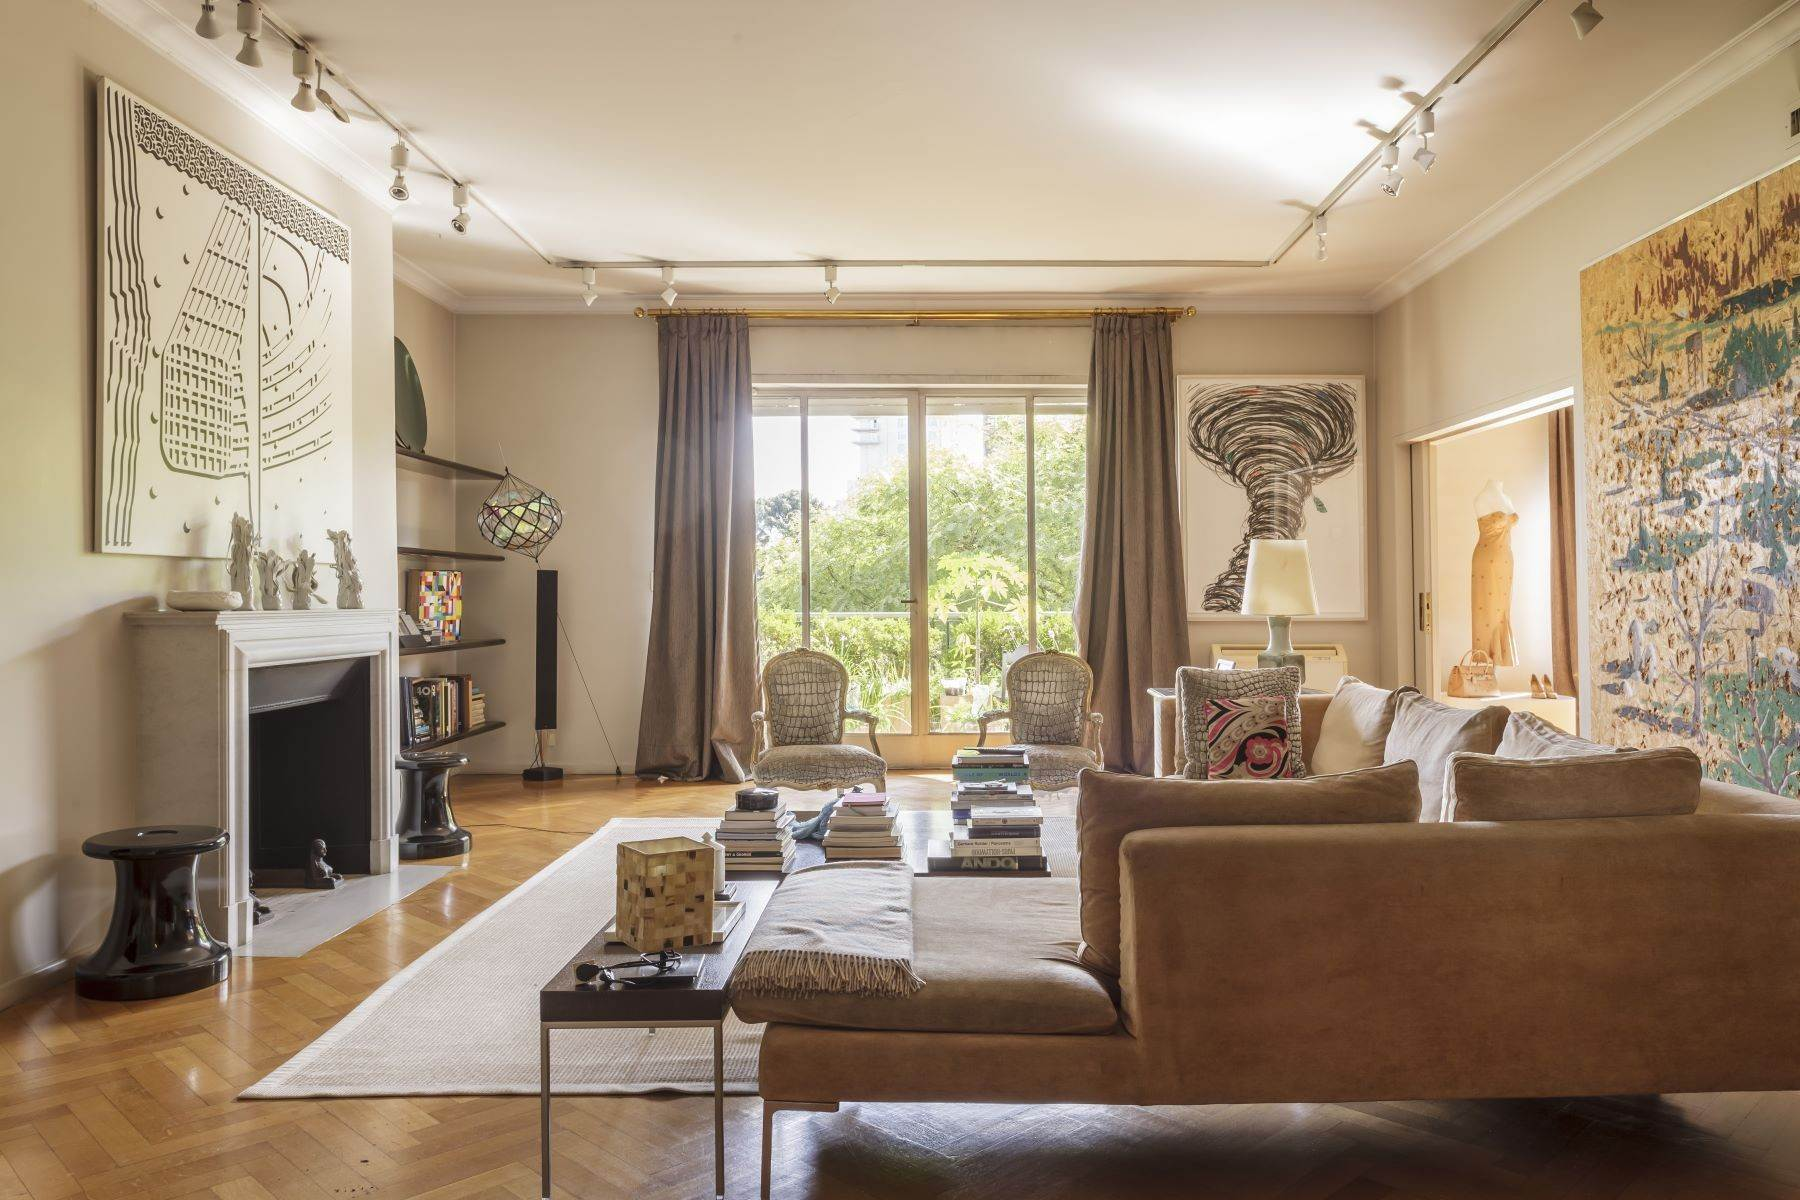 Apartments for Sale at Featured apartment Av. del Libertador 2800, Buenos Aires, Buenos Aires, C1425 CABA Argentina